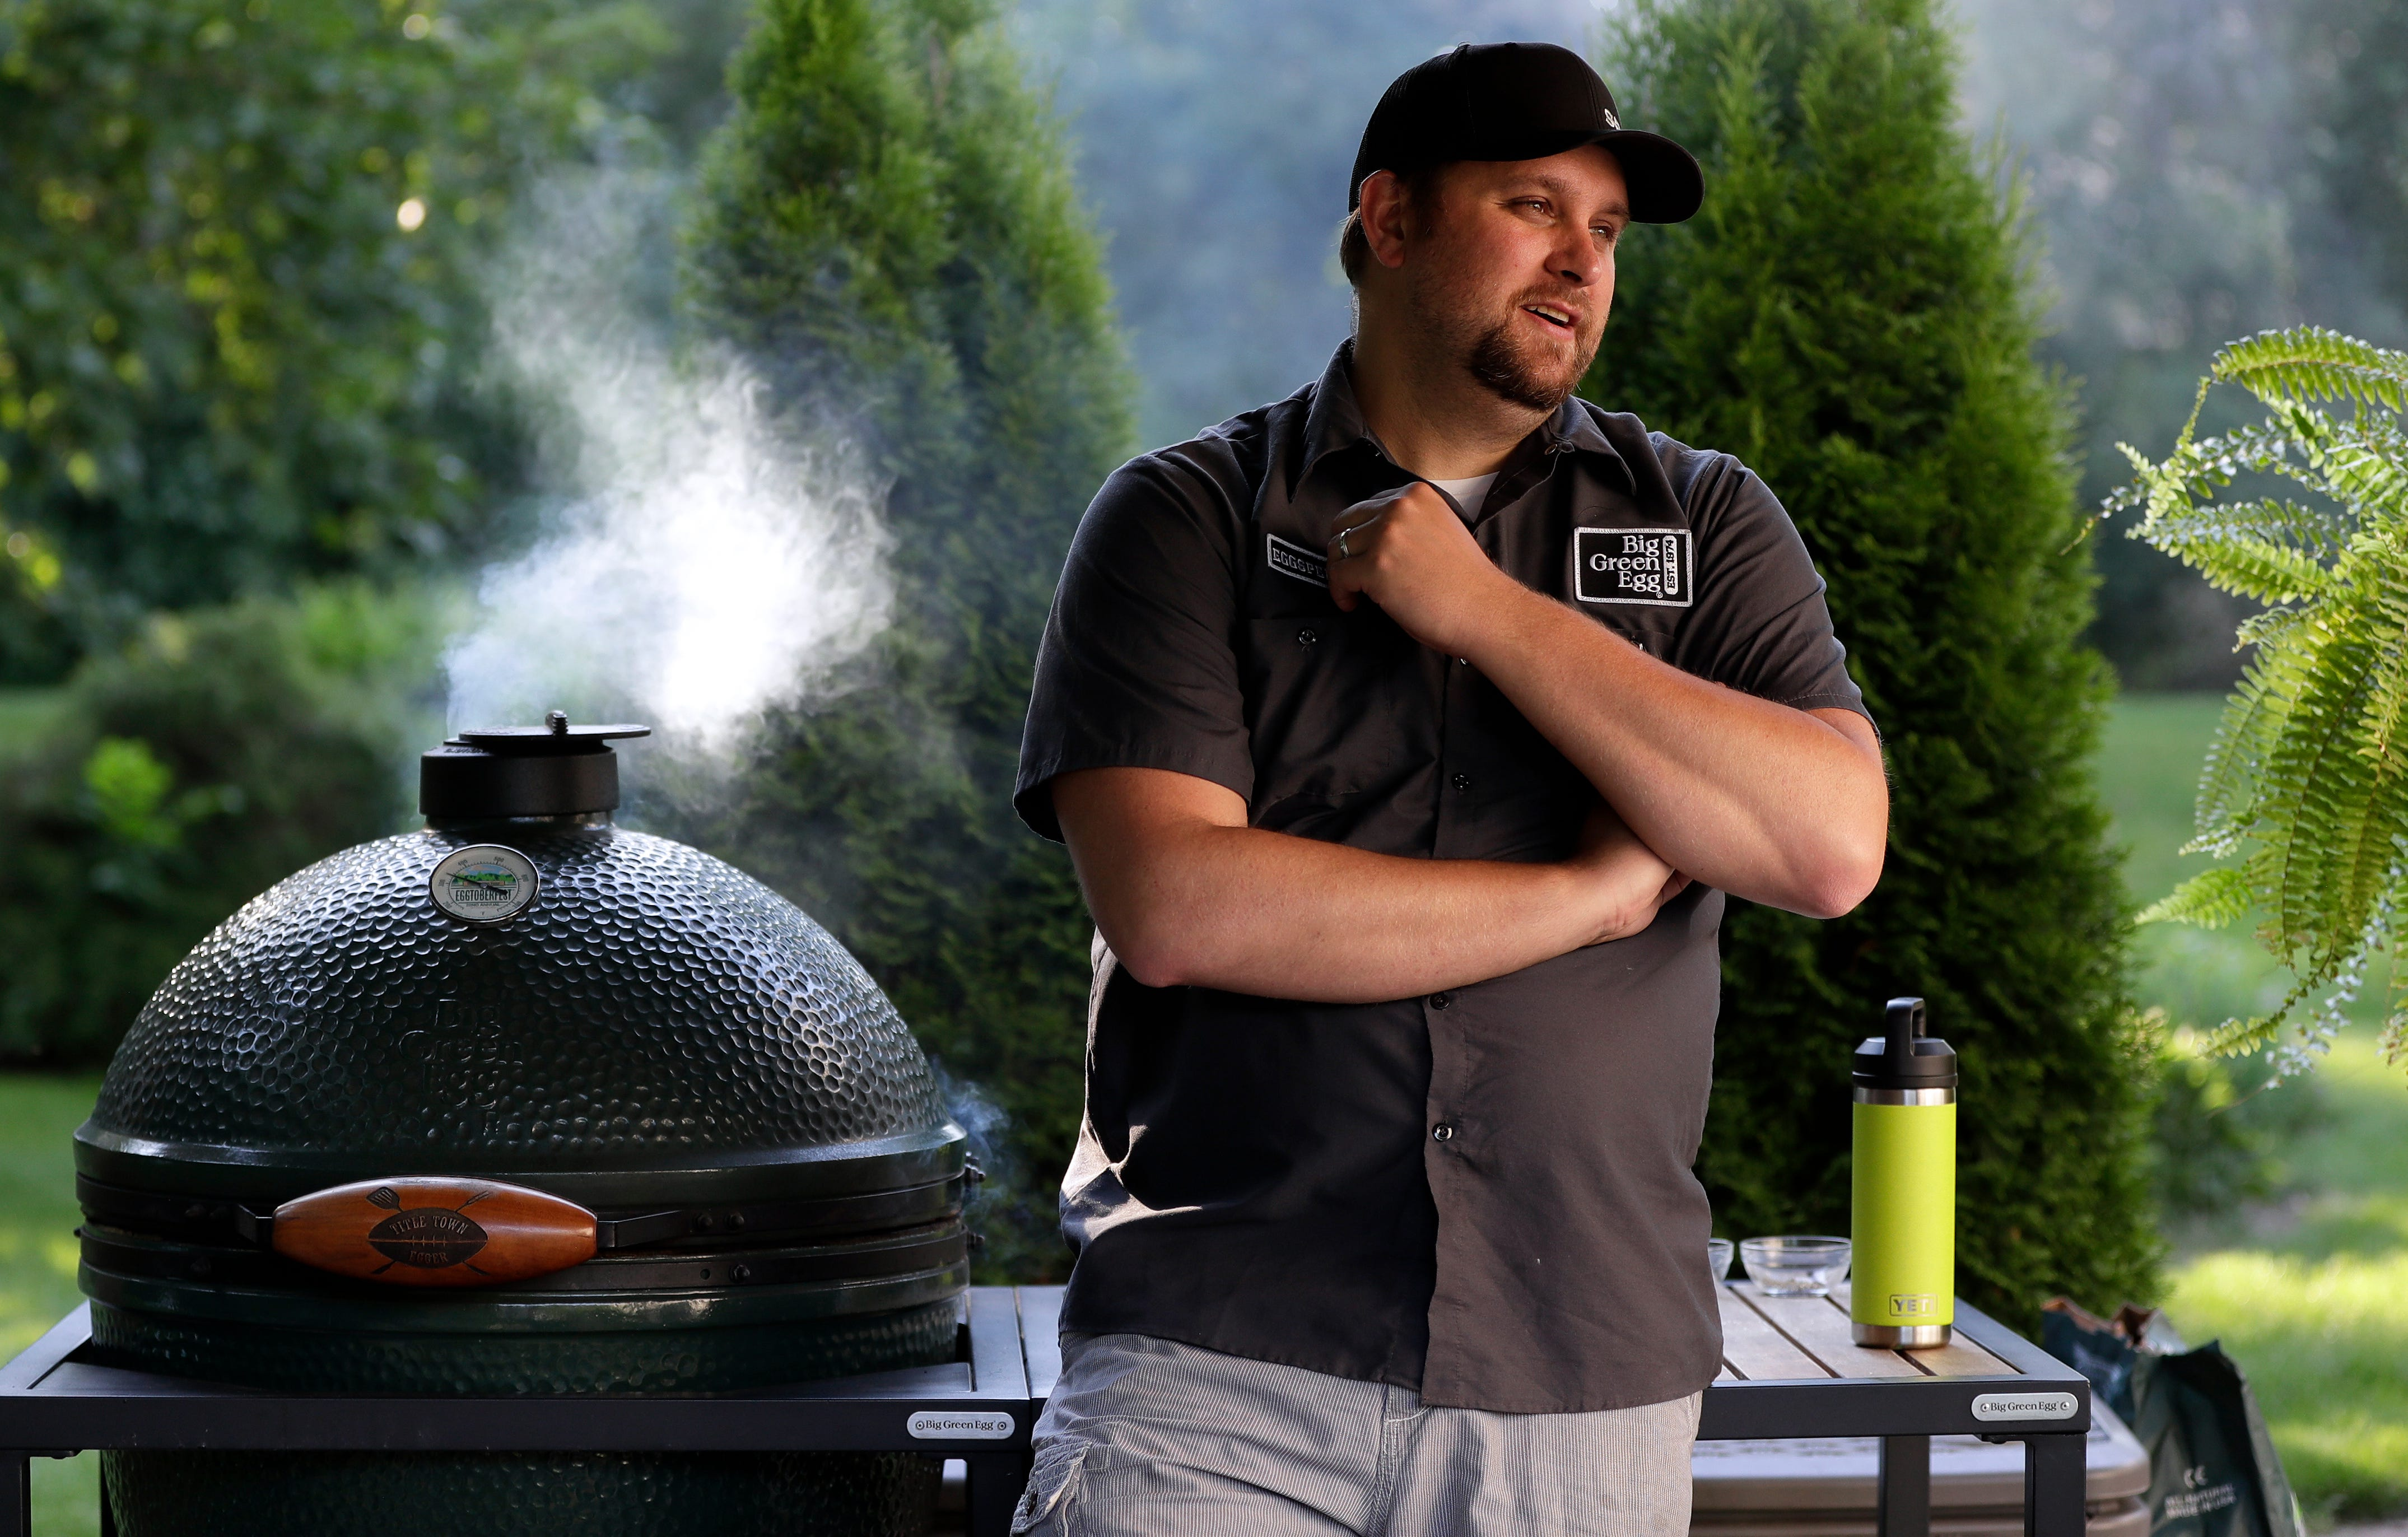 """""""It's always been my therapy. With my schedule it's nice to have a place to go back and relax,"""" said Chris Schemm of his grilling hobby."""